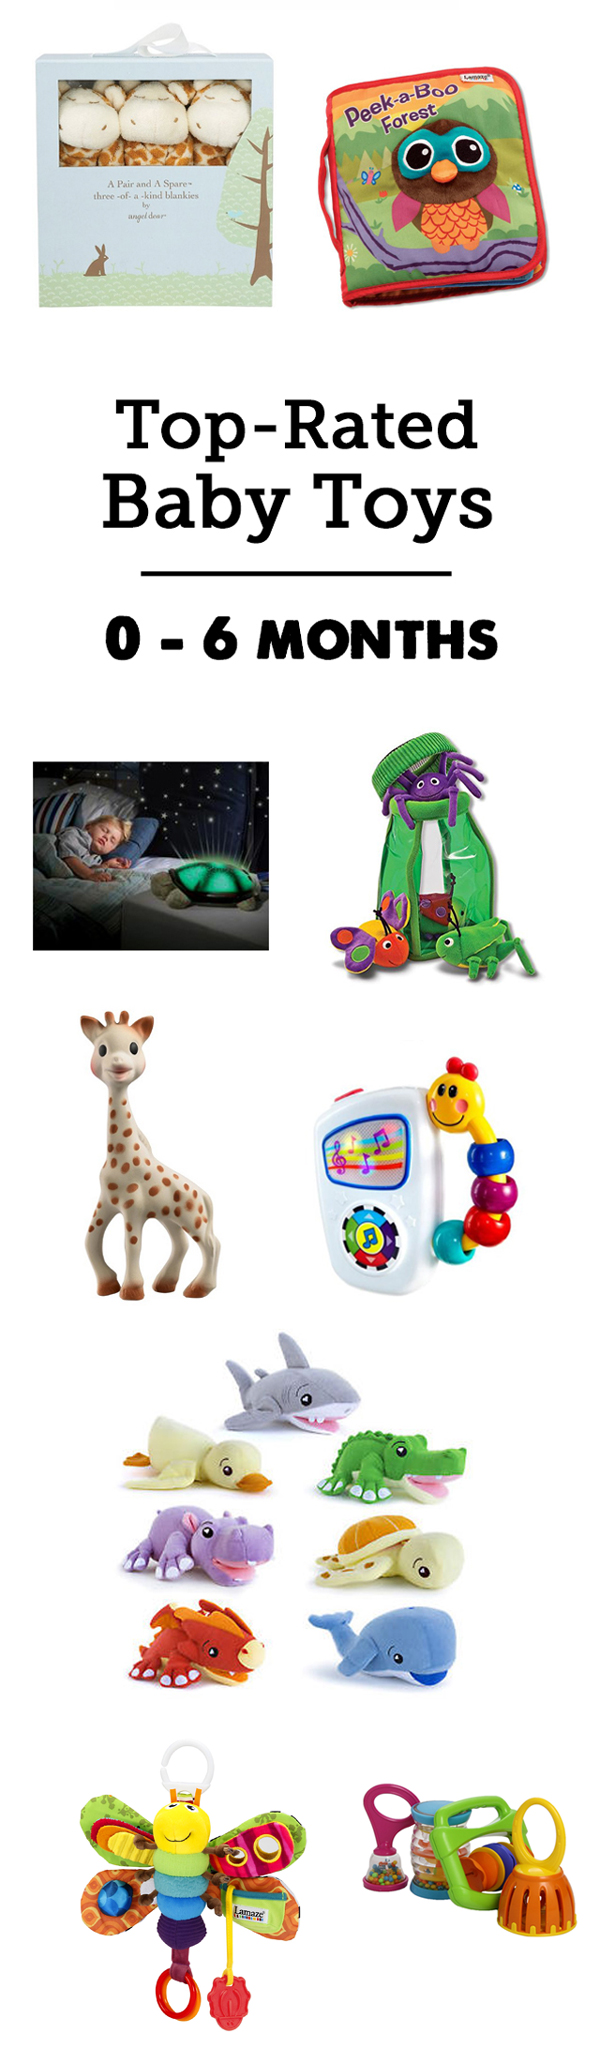 Best developmental toys for babies & young toddlers - great list for that tricky 0 - 6 month age range. Such a great guide! Lots of detailed descriptions and all of our favorites are covered! Bookmarking for anytime someone has a baby and I need the perfect gift.